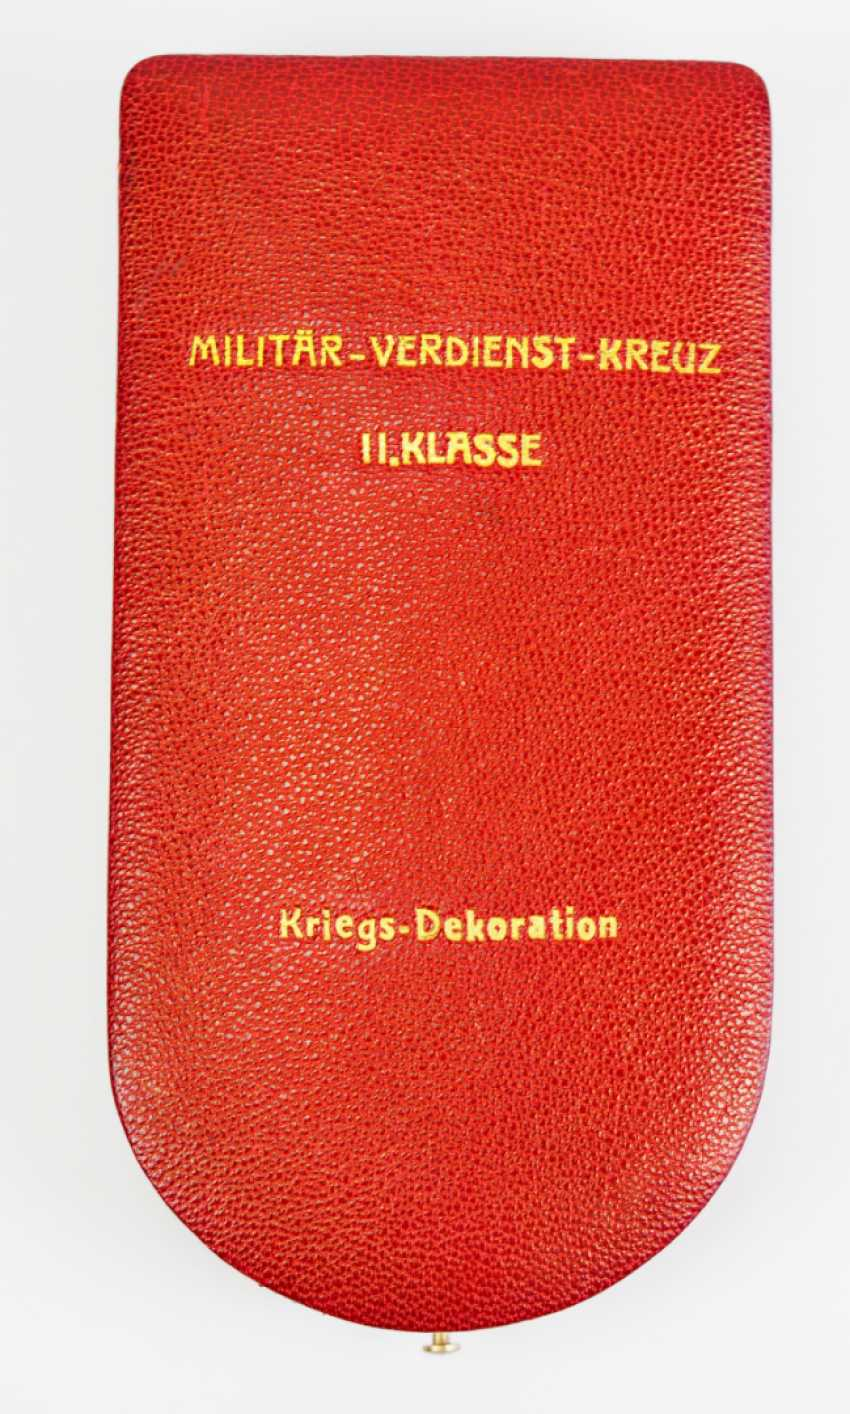 Austria: Military Merit Cross, 2. Class with war decoration, in a case. - photo 8